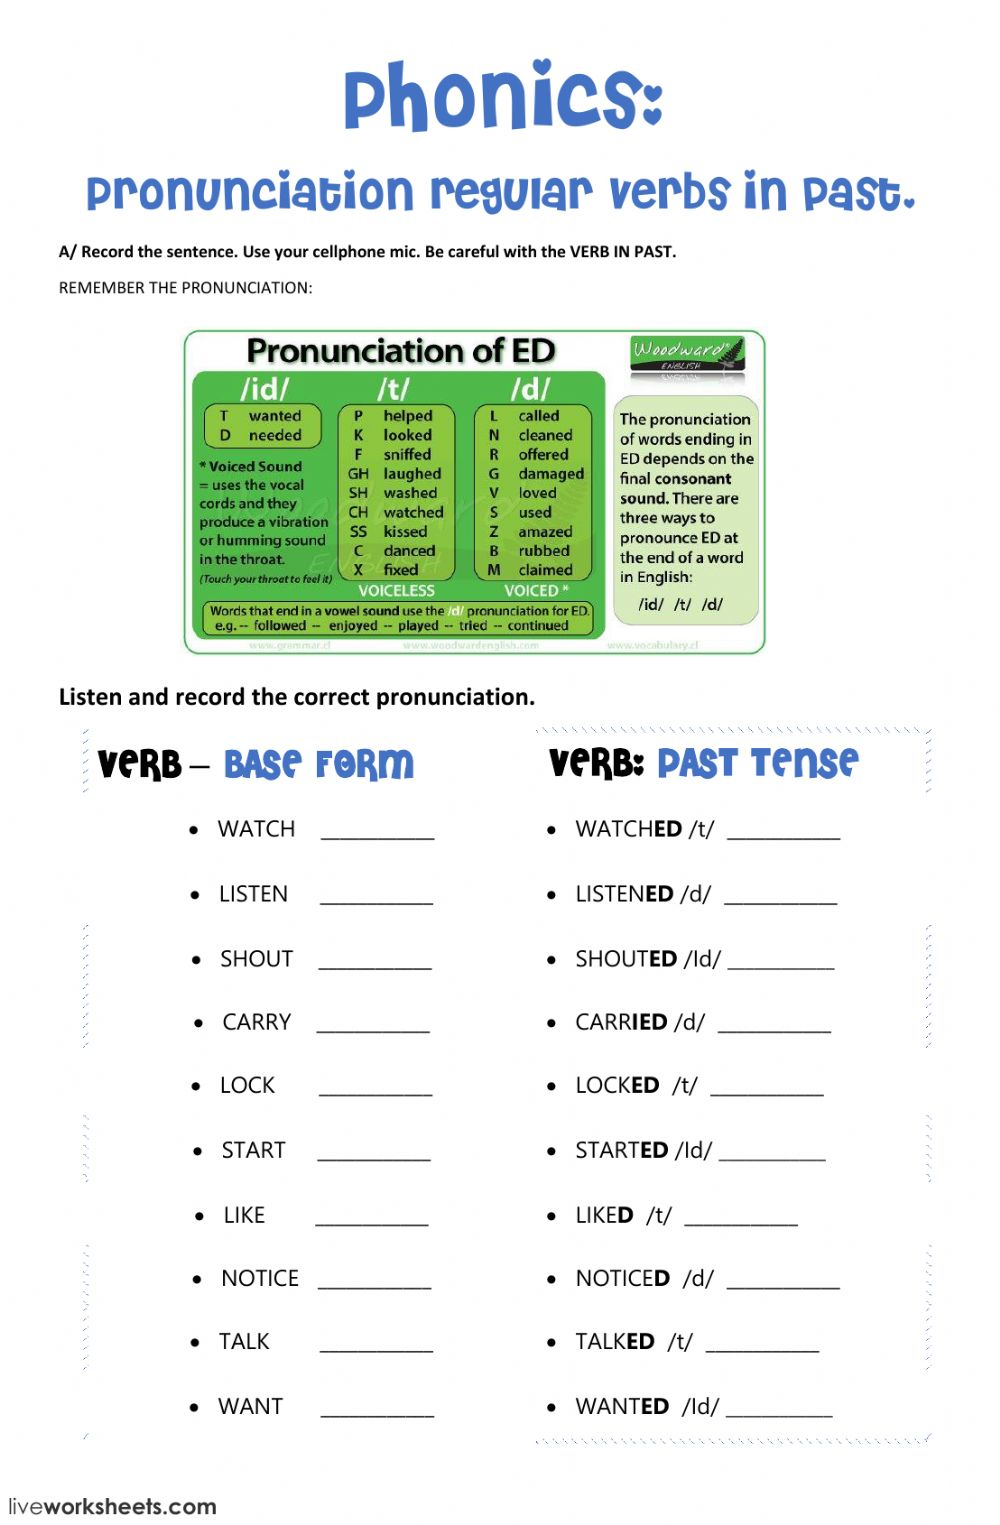 Pronunciation regular verbs in past - ed - Interactive worksheet